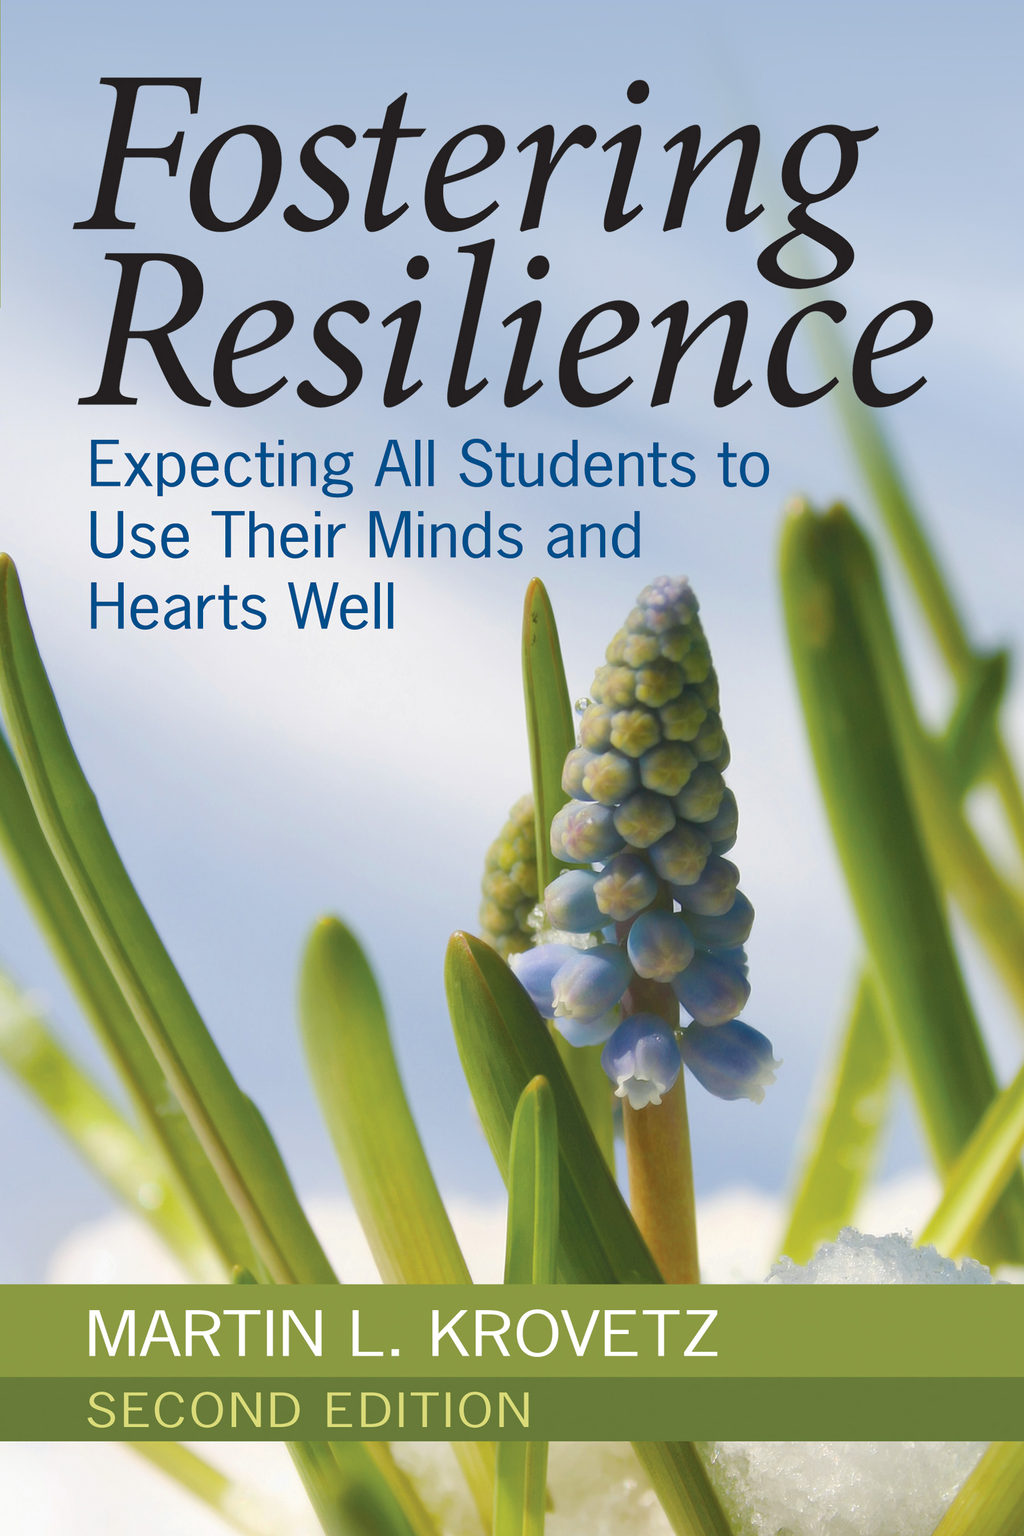 Fostering Resilience Expecting All Students to Use Their Minds and Hearts Well